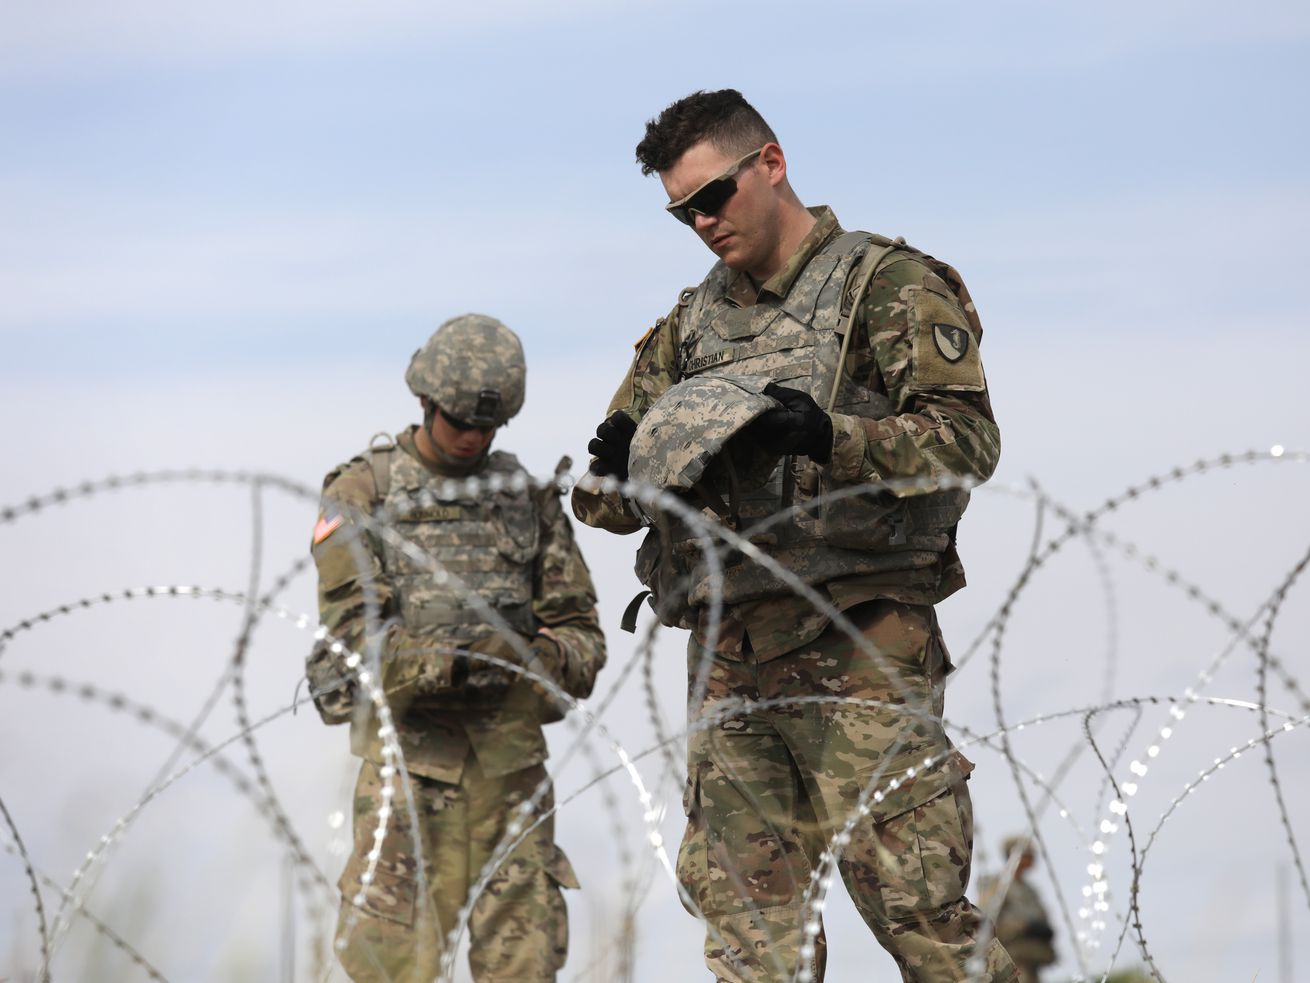 US Army soldiers pause from the heat while stringing razor wire near the port of entry at the US-Mexico border on November 4, 2018, in Donna, Texas.